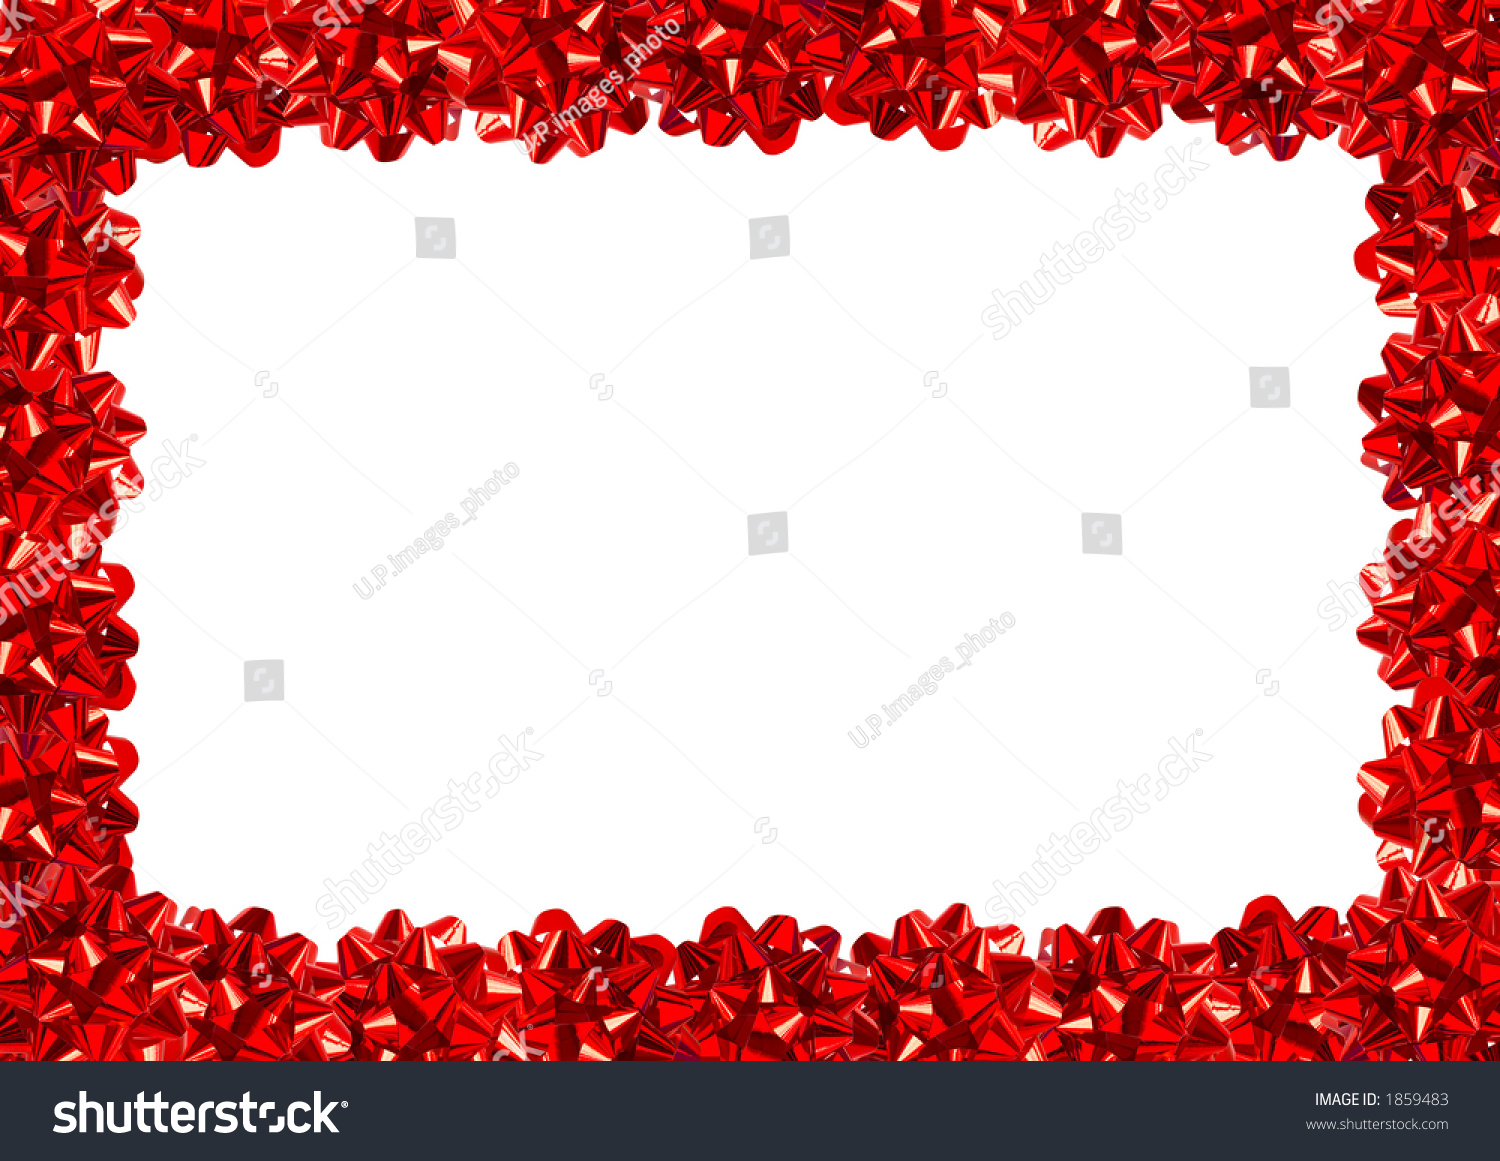 Red gift bows border with clipping path for easy background removing - Red Gift Bows Border With Clipping Path For Easy Background Removing Preview Save To A Lightbox